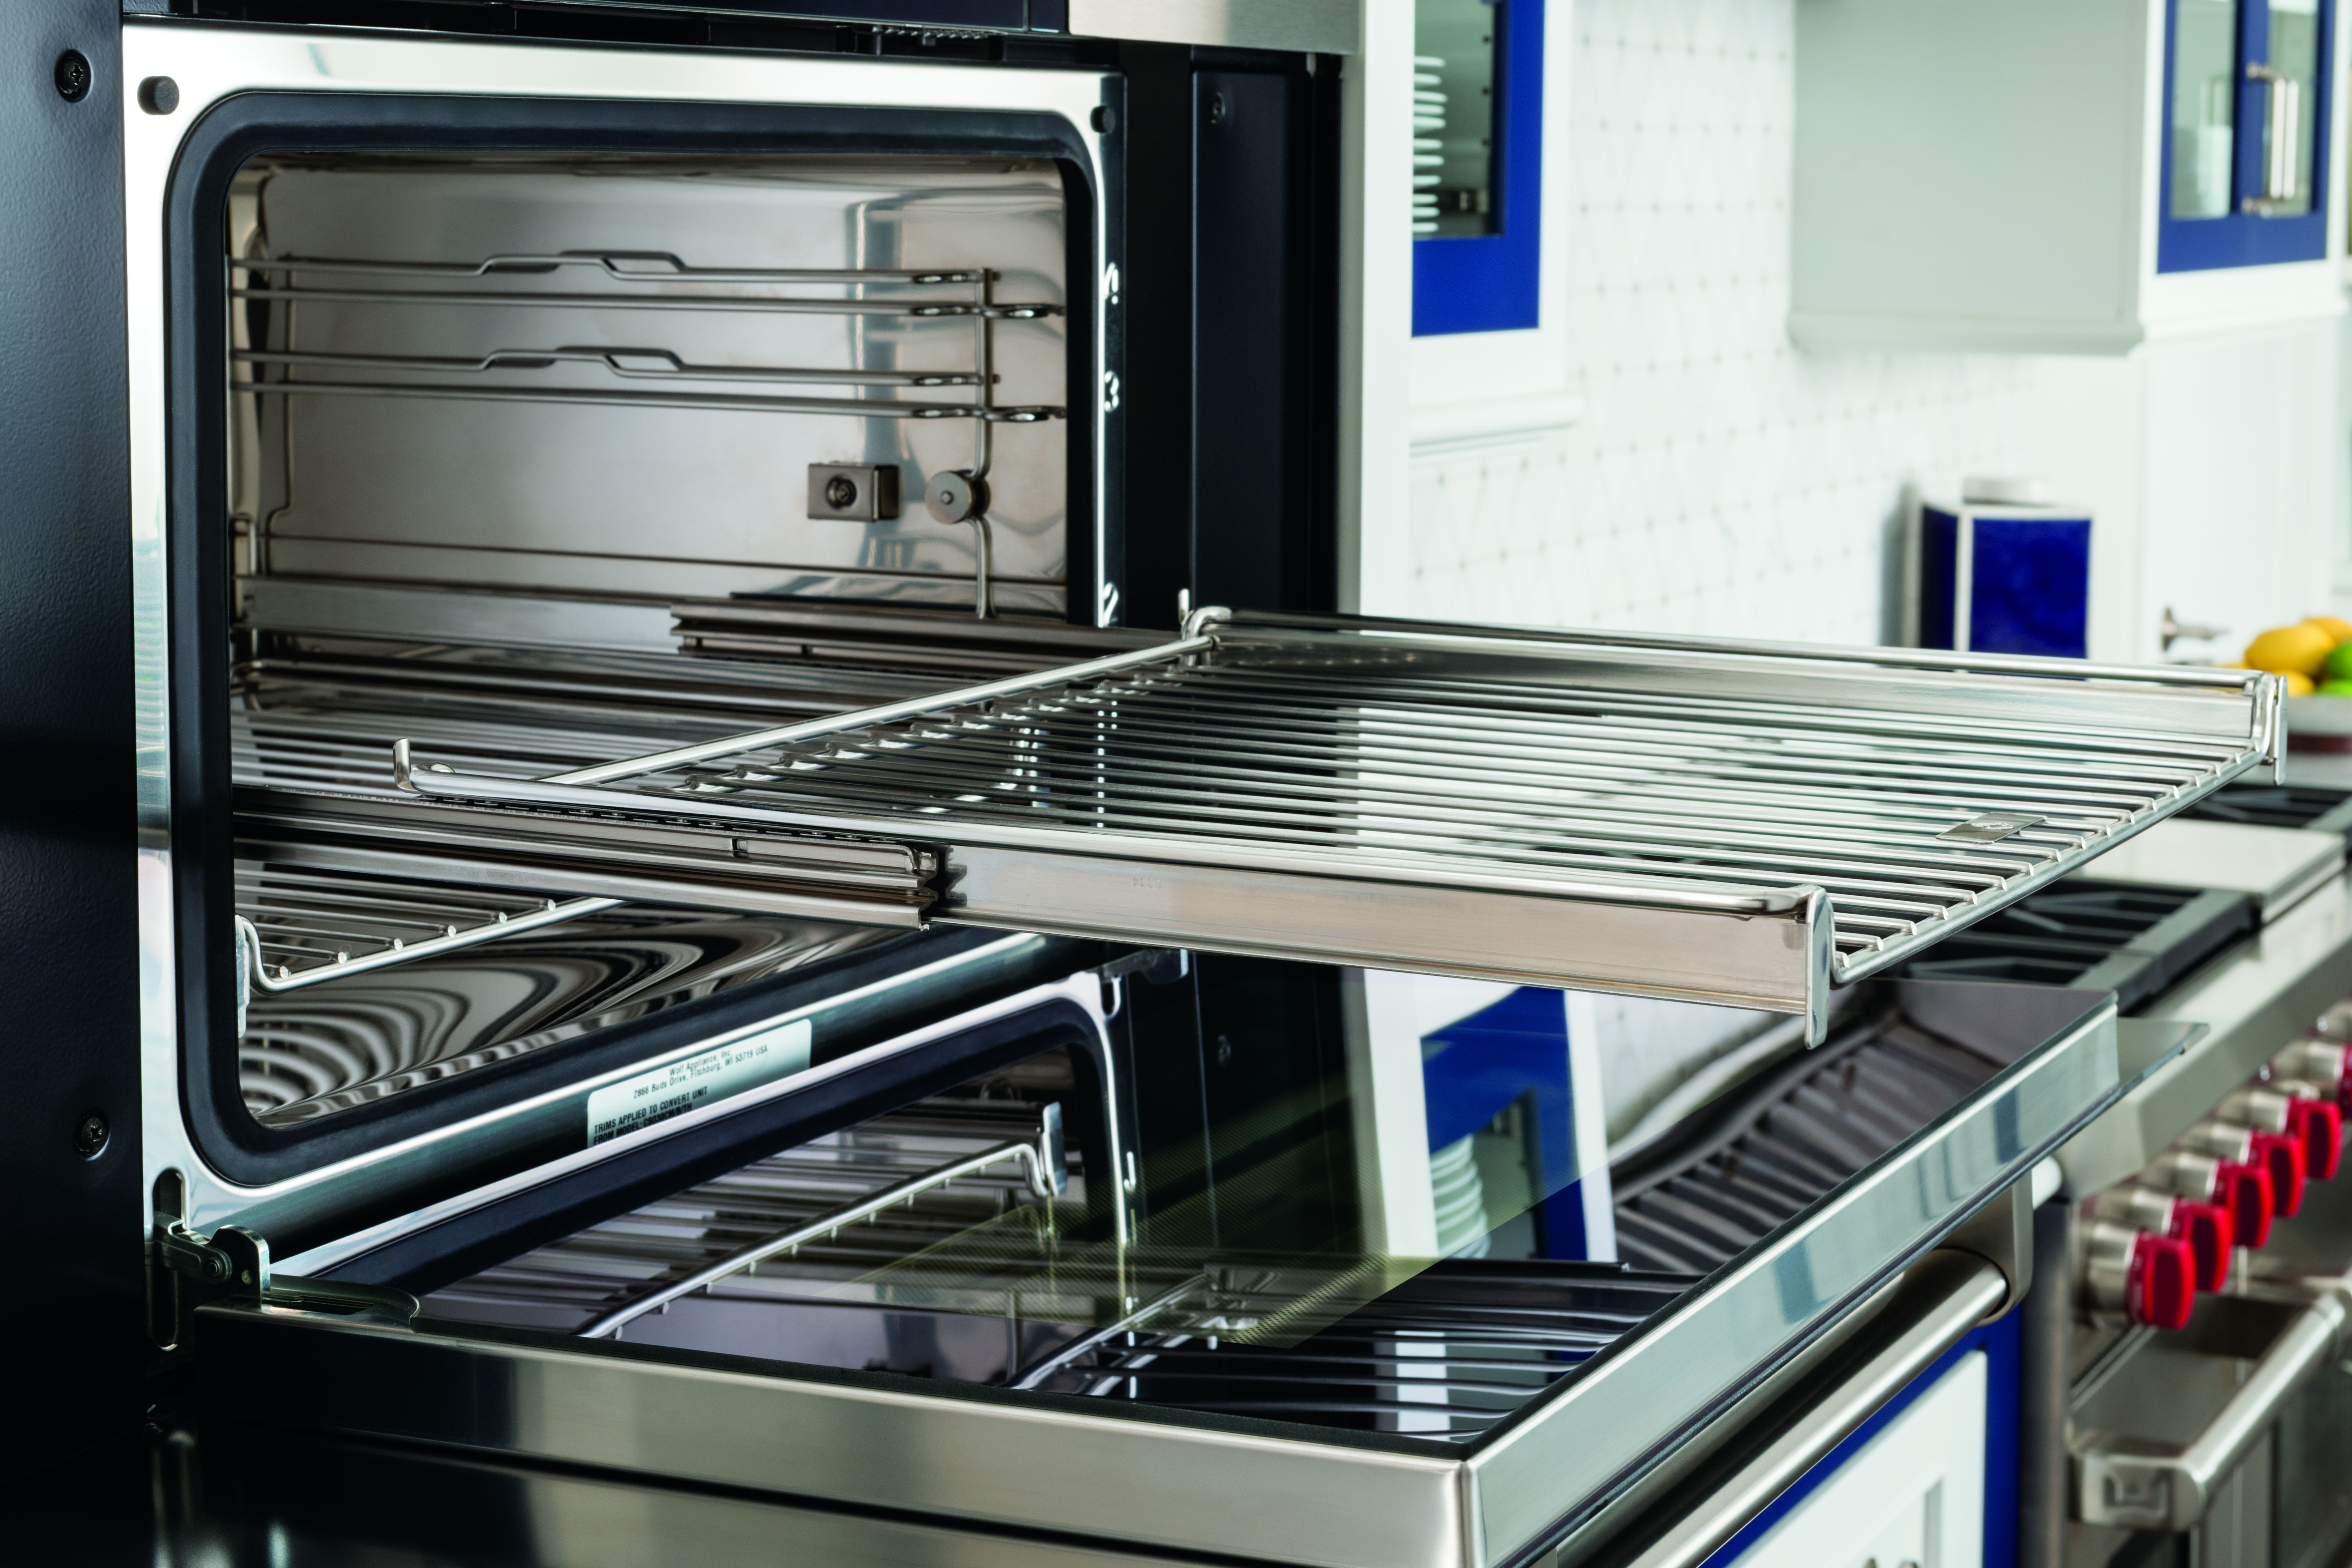 Wolf E Series 30 Electric Single Oven Built In Stainless Steel So30pe